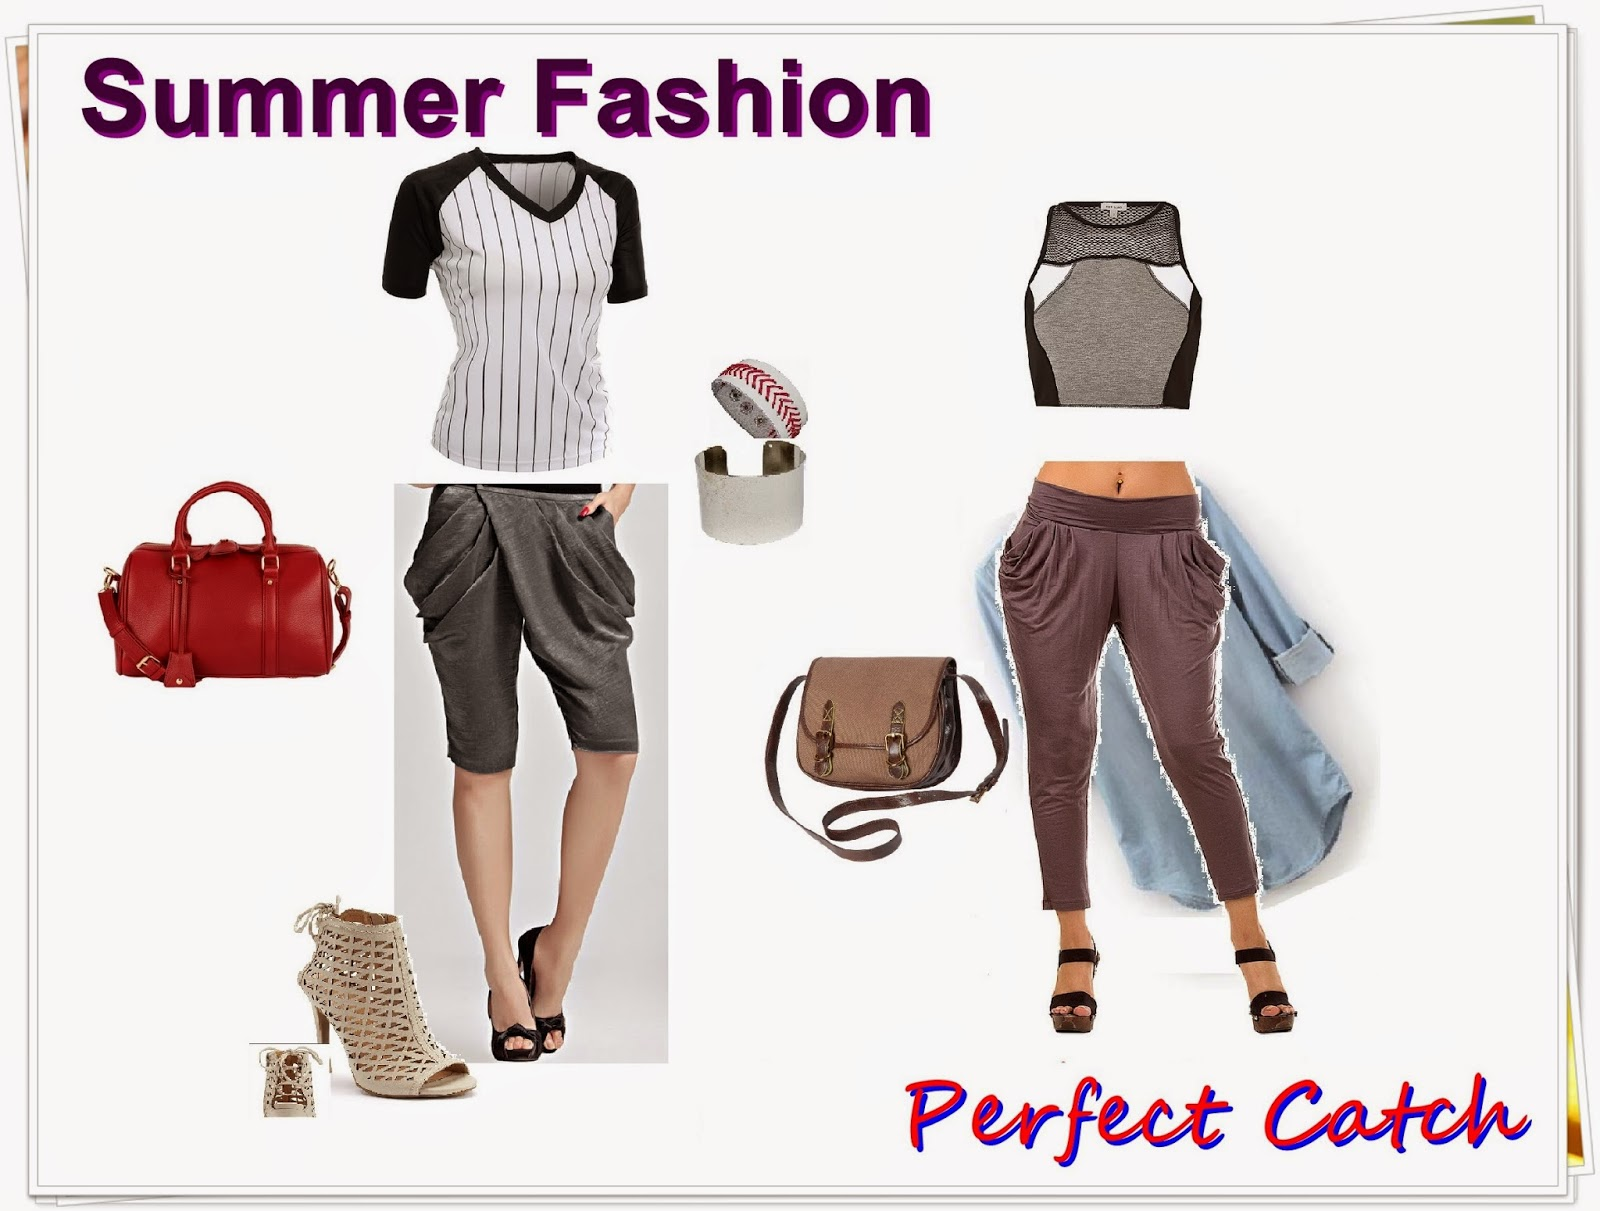 Meg-made Creations Summertime Fashion Tips and Trends - How to dress sexy and appropriately AND ...